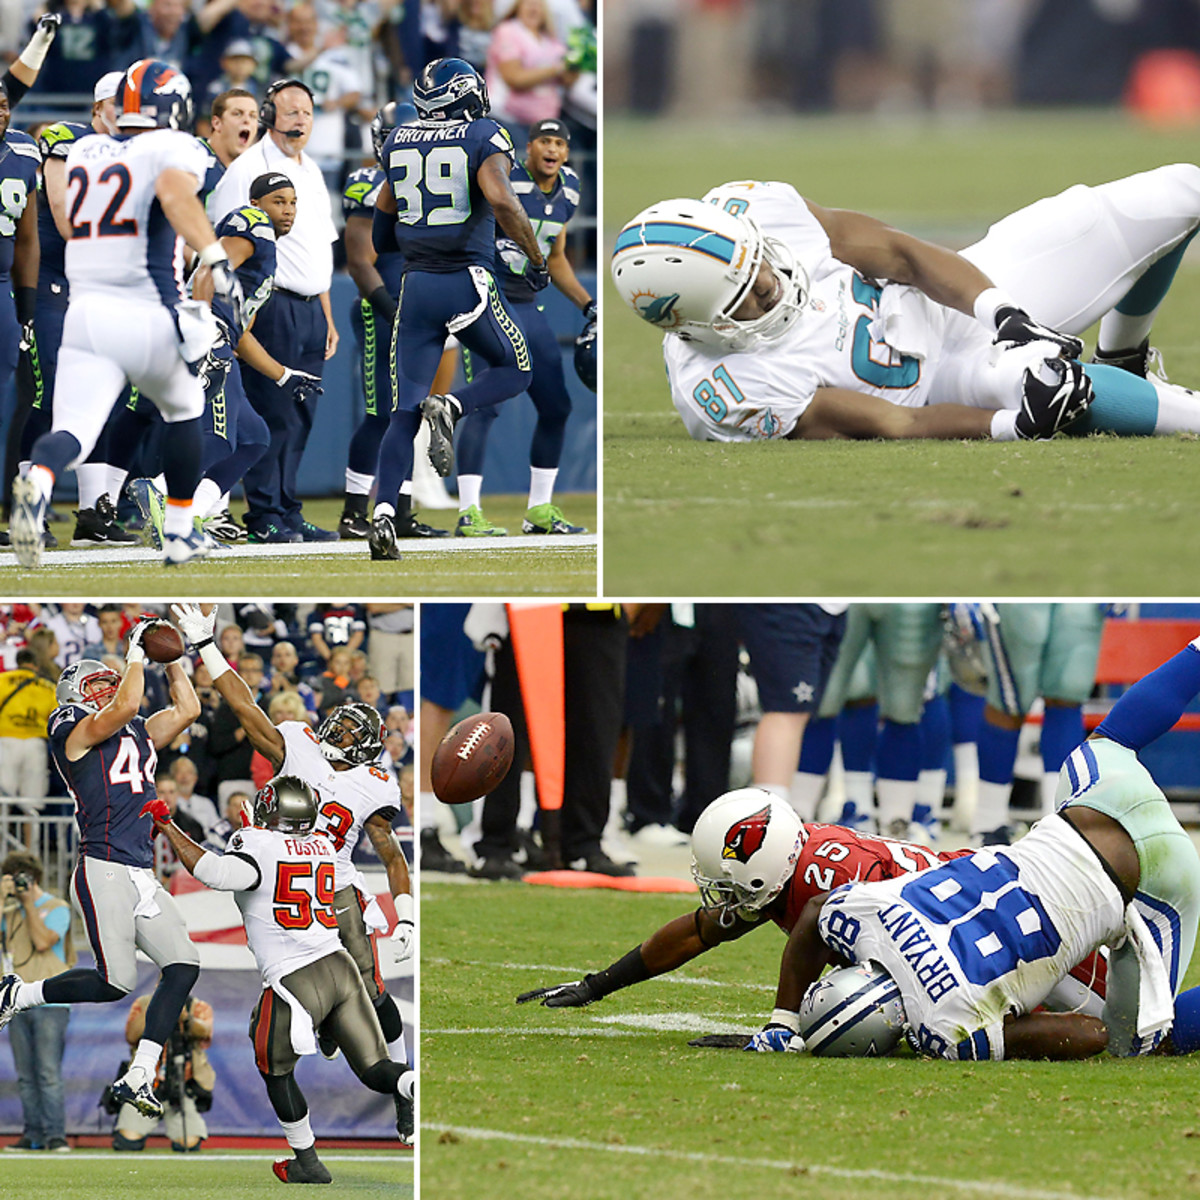 Brandon Browner's 106-yard fumble return (top left) and Zach Scudfeld's two-point converstion catch (bottom left) marked the good of preseason's second week; while Dustin Keller's likely season-ending knee injury (top right) and Dez Bryant's fumble after a 27-yard catch (bottom right, one of the Cowboys' six turnovers on the day) marked the bad. (Otto Greule Jr/Getty Images :: Eric Gay/AP :: Daniel Wallace/MCT/ZUMAPRESS.com :: Norm Hall/Getty Images)